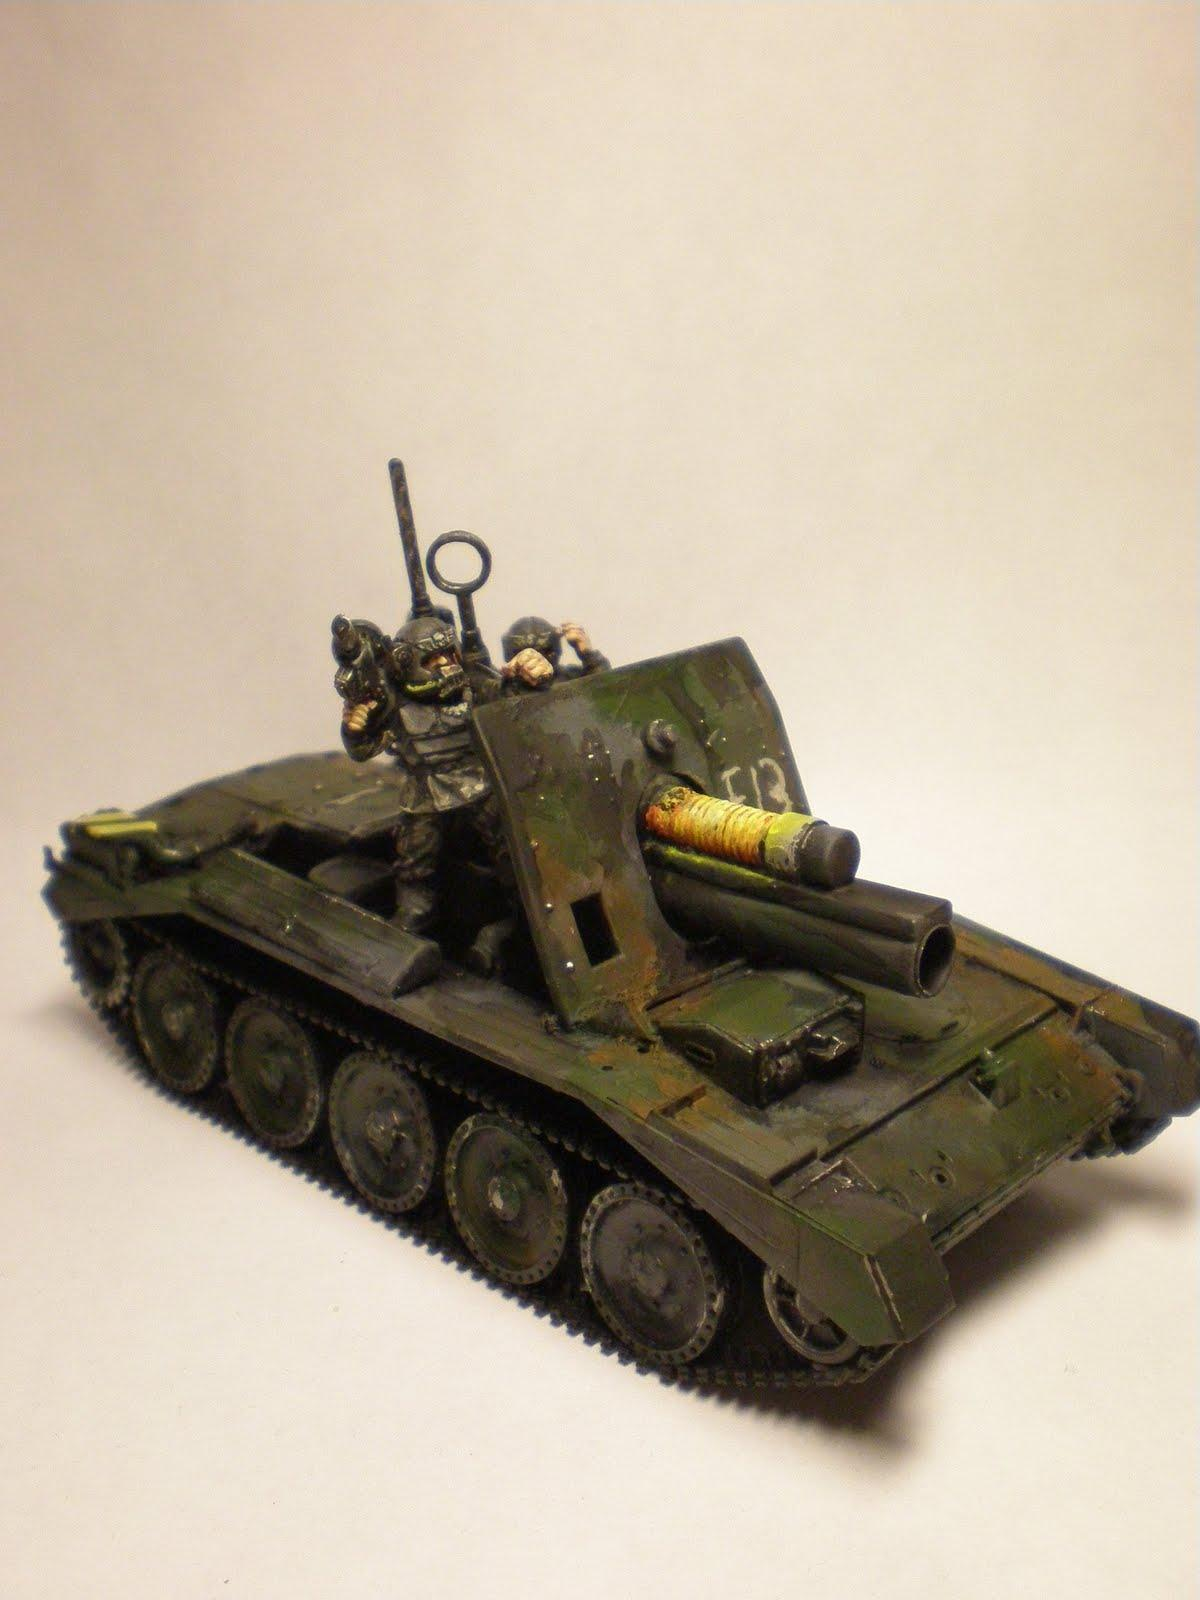 Conversion, Imperial Guard, Plasma, Self-propelled, Tank